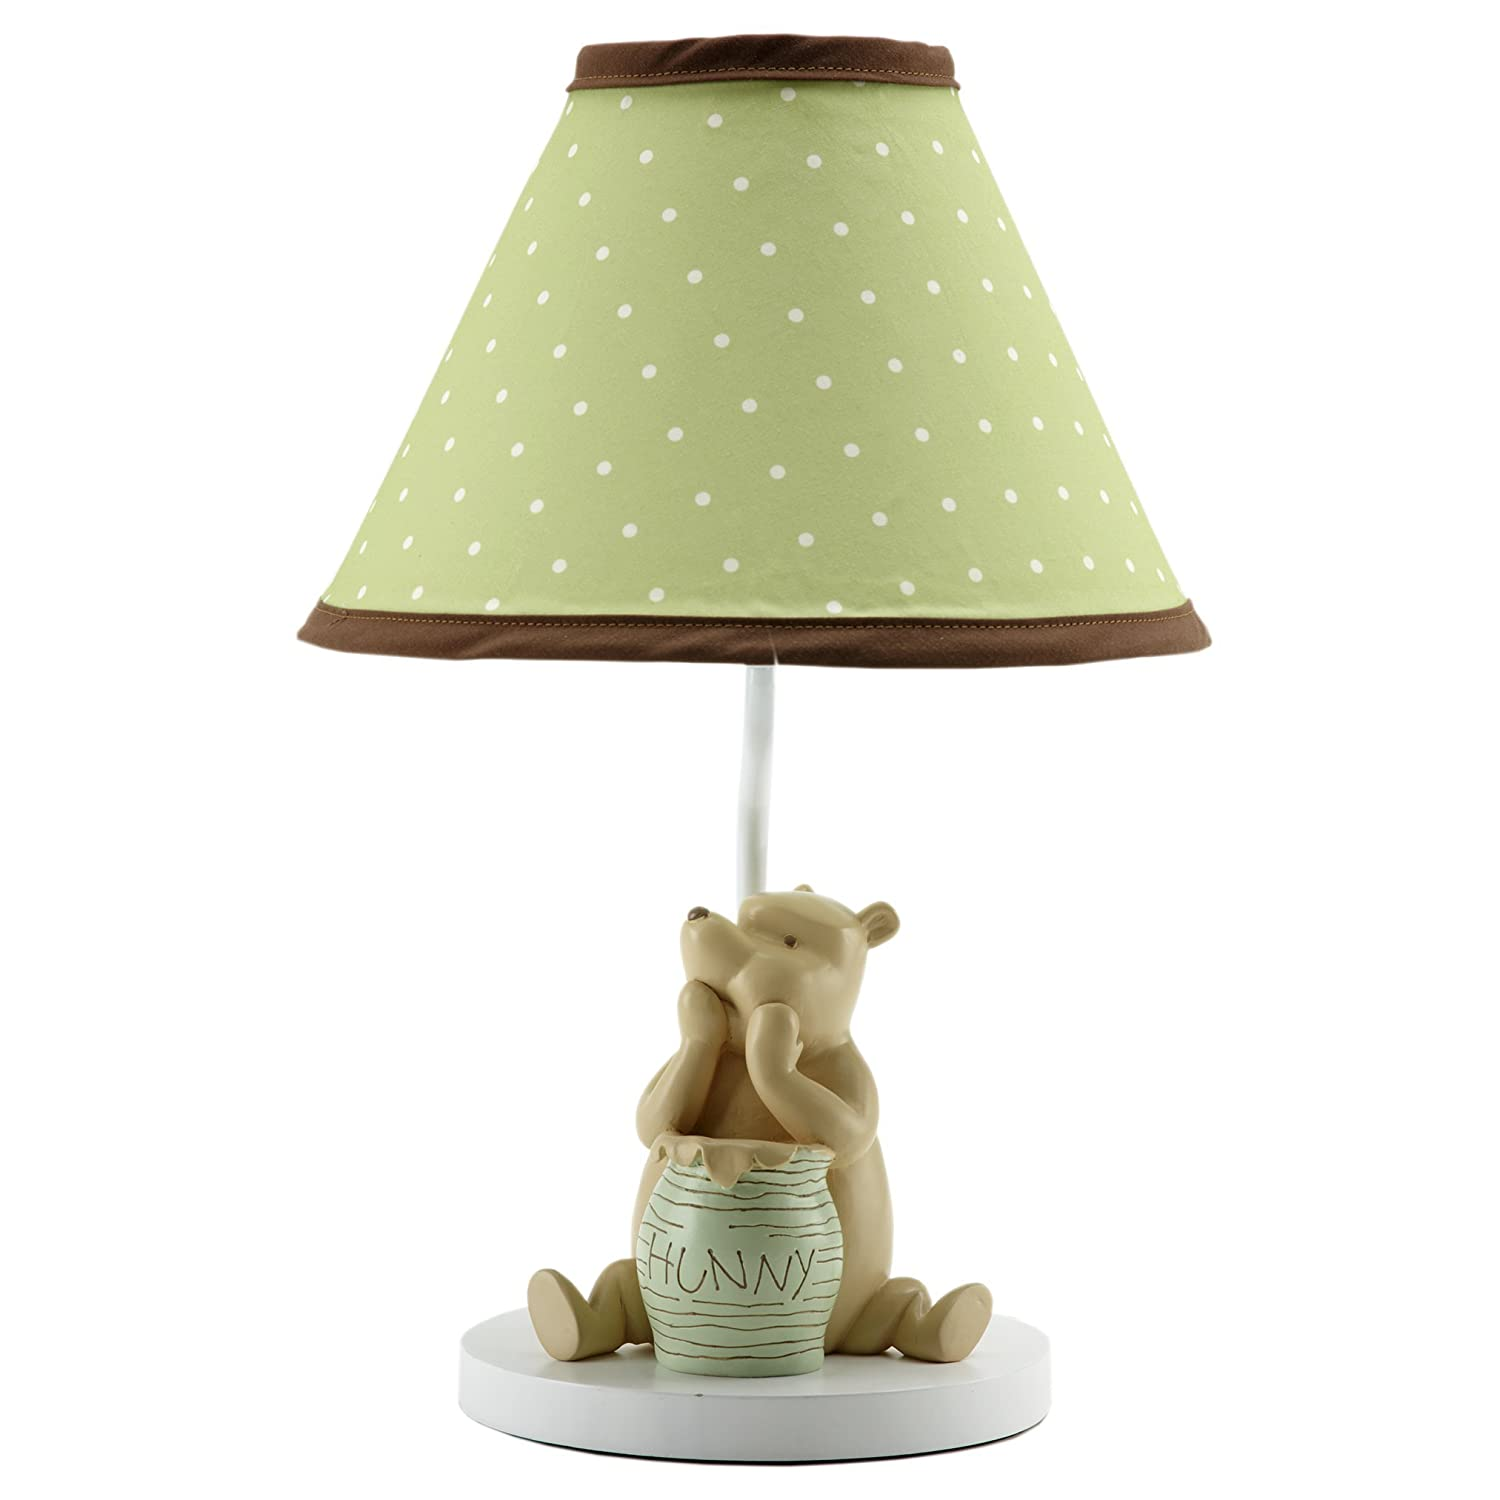 Amazon disney my friend pooh lamp and shade sageivory amazon disney my friend pooh lamp and shade sageivory discontinued by manufacturer nursery lampshades baby arubaitofo Choice Image